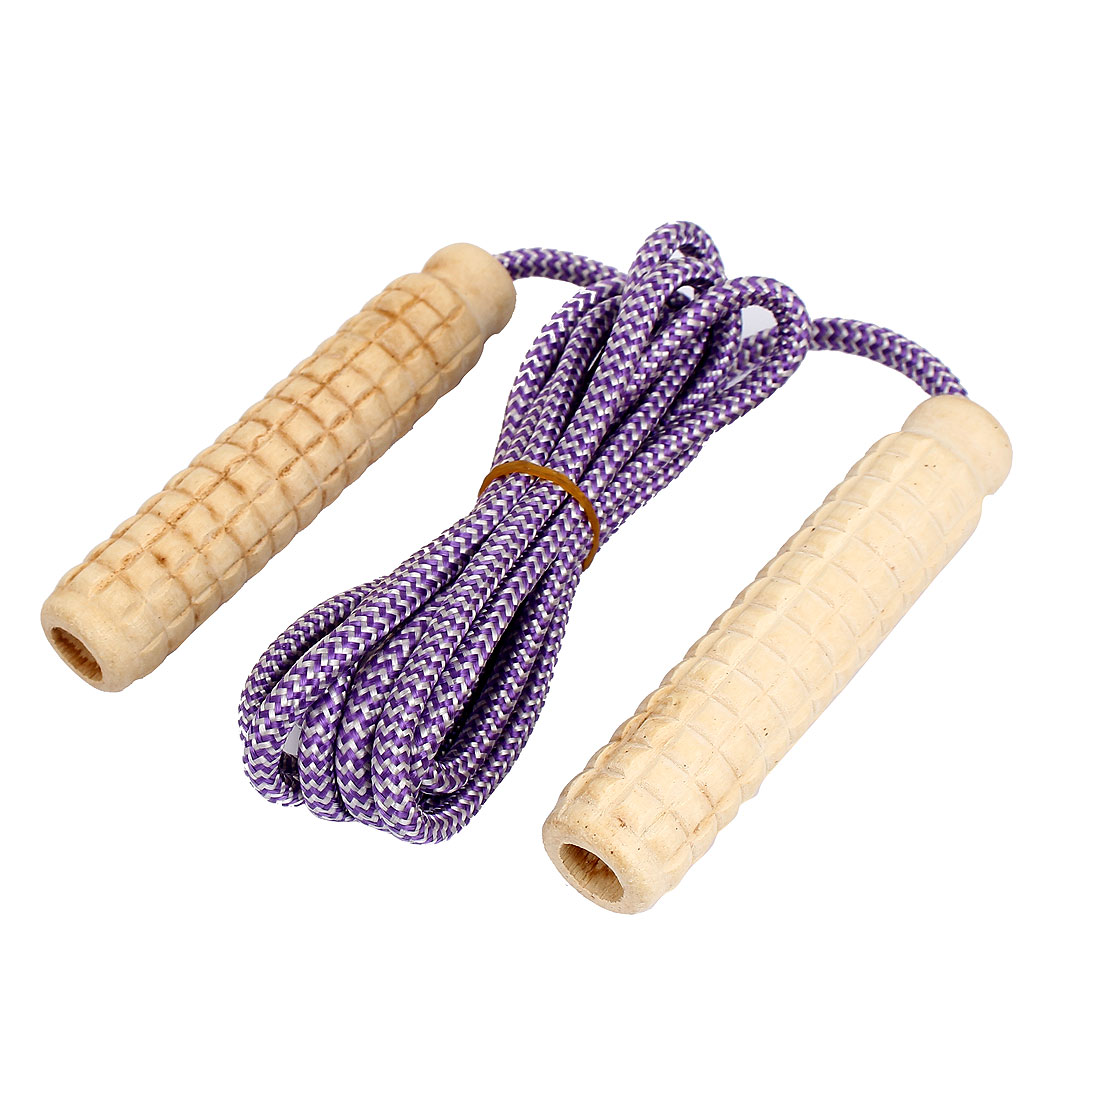 Wooden Handle Exercise Fitness Training Adjustable Skipping Jump Rope Purple